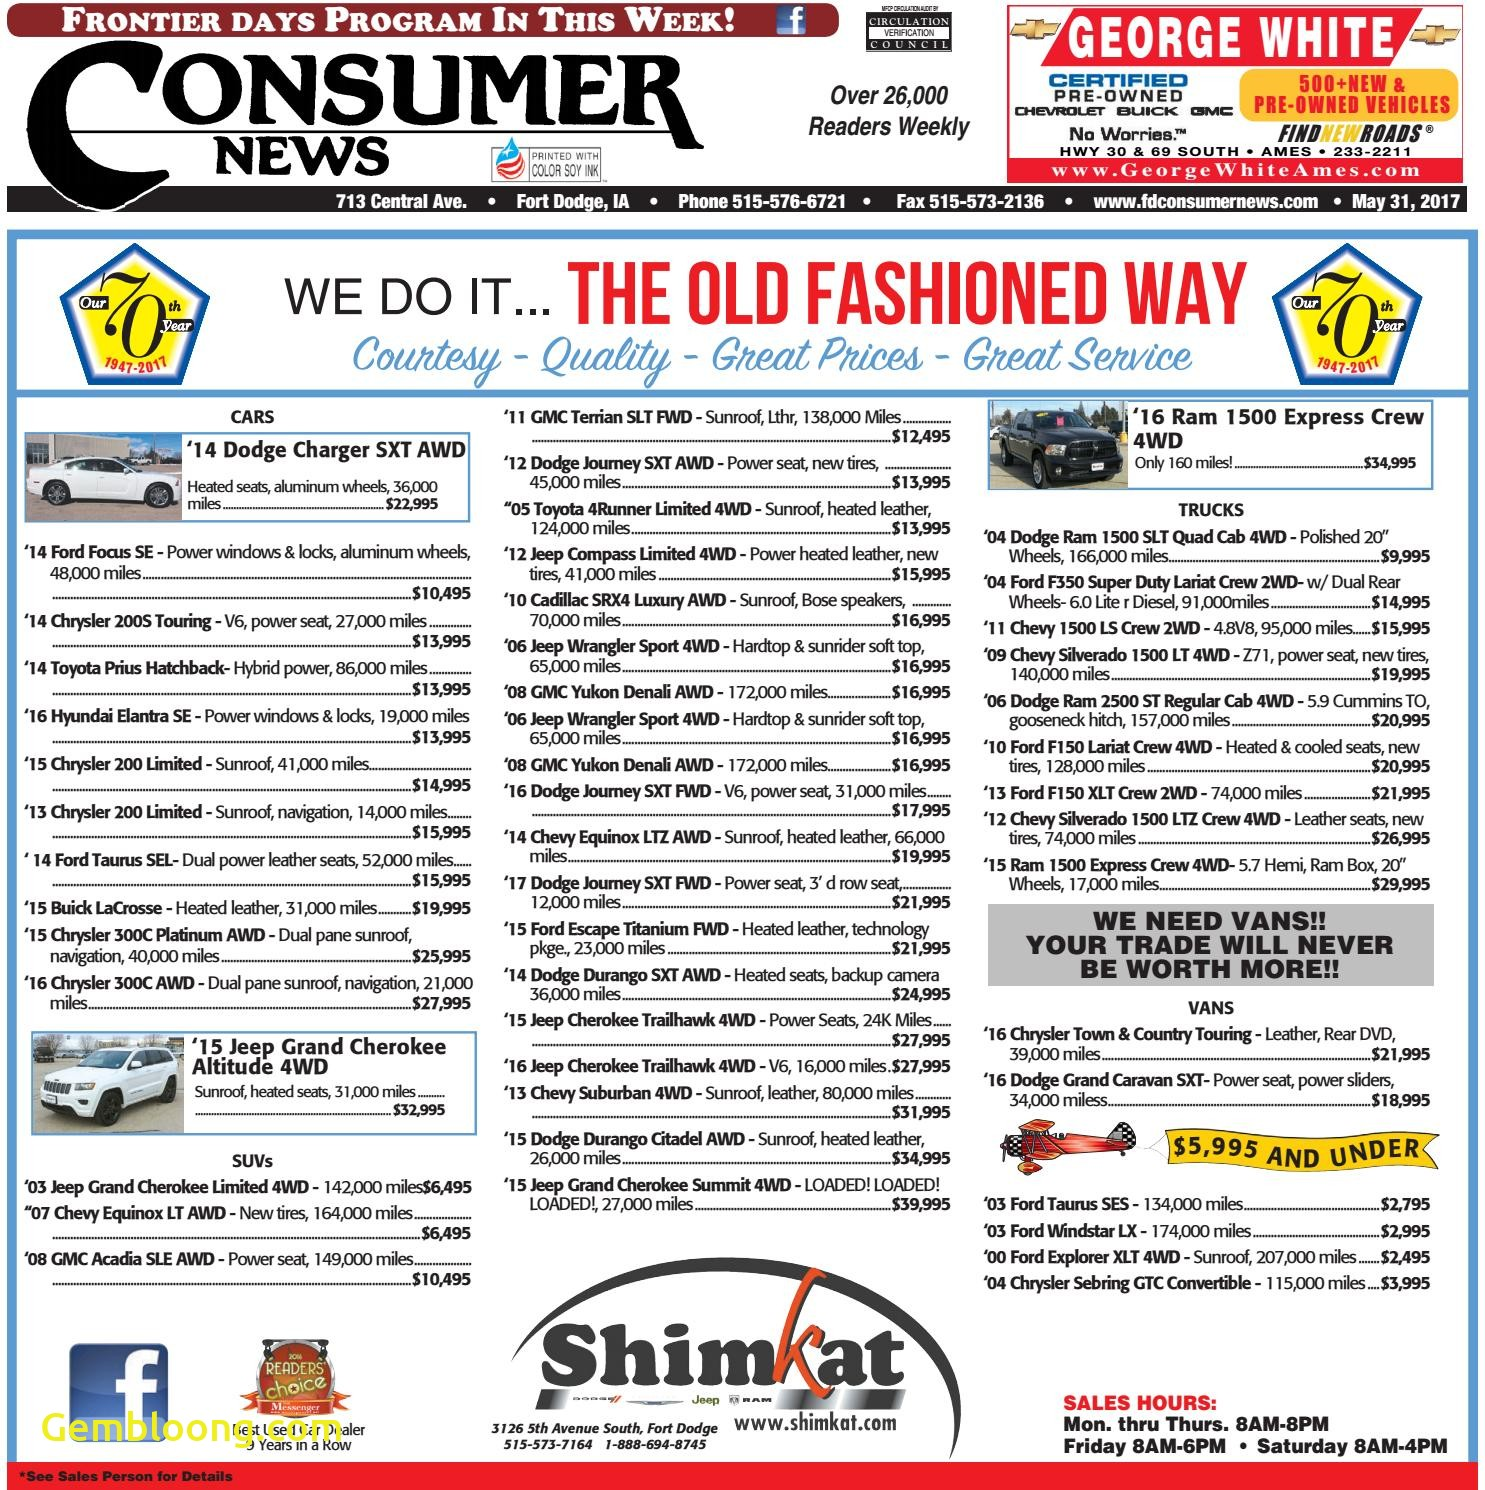 Unlimited Carfax Inspirational 05 31 17 Consumer News by Consumer News issuu